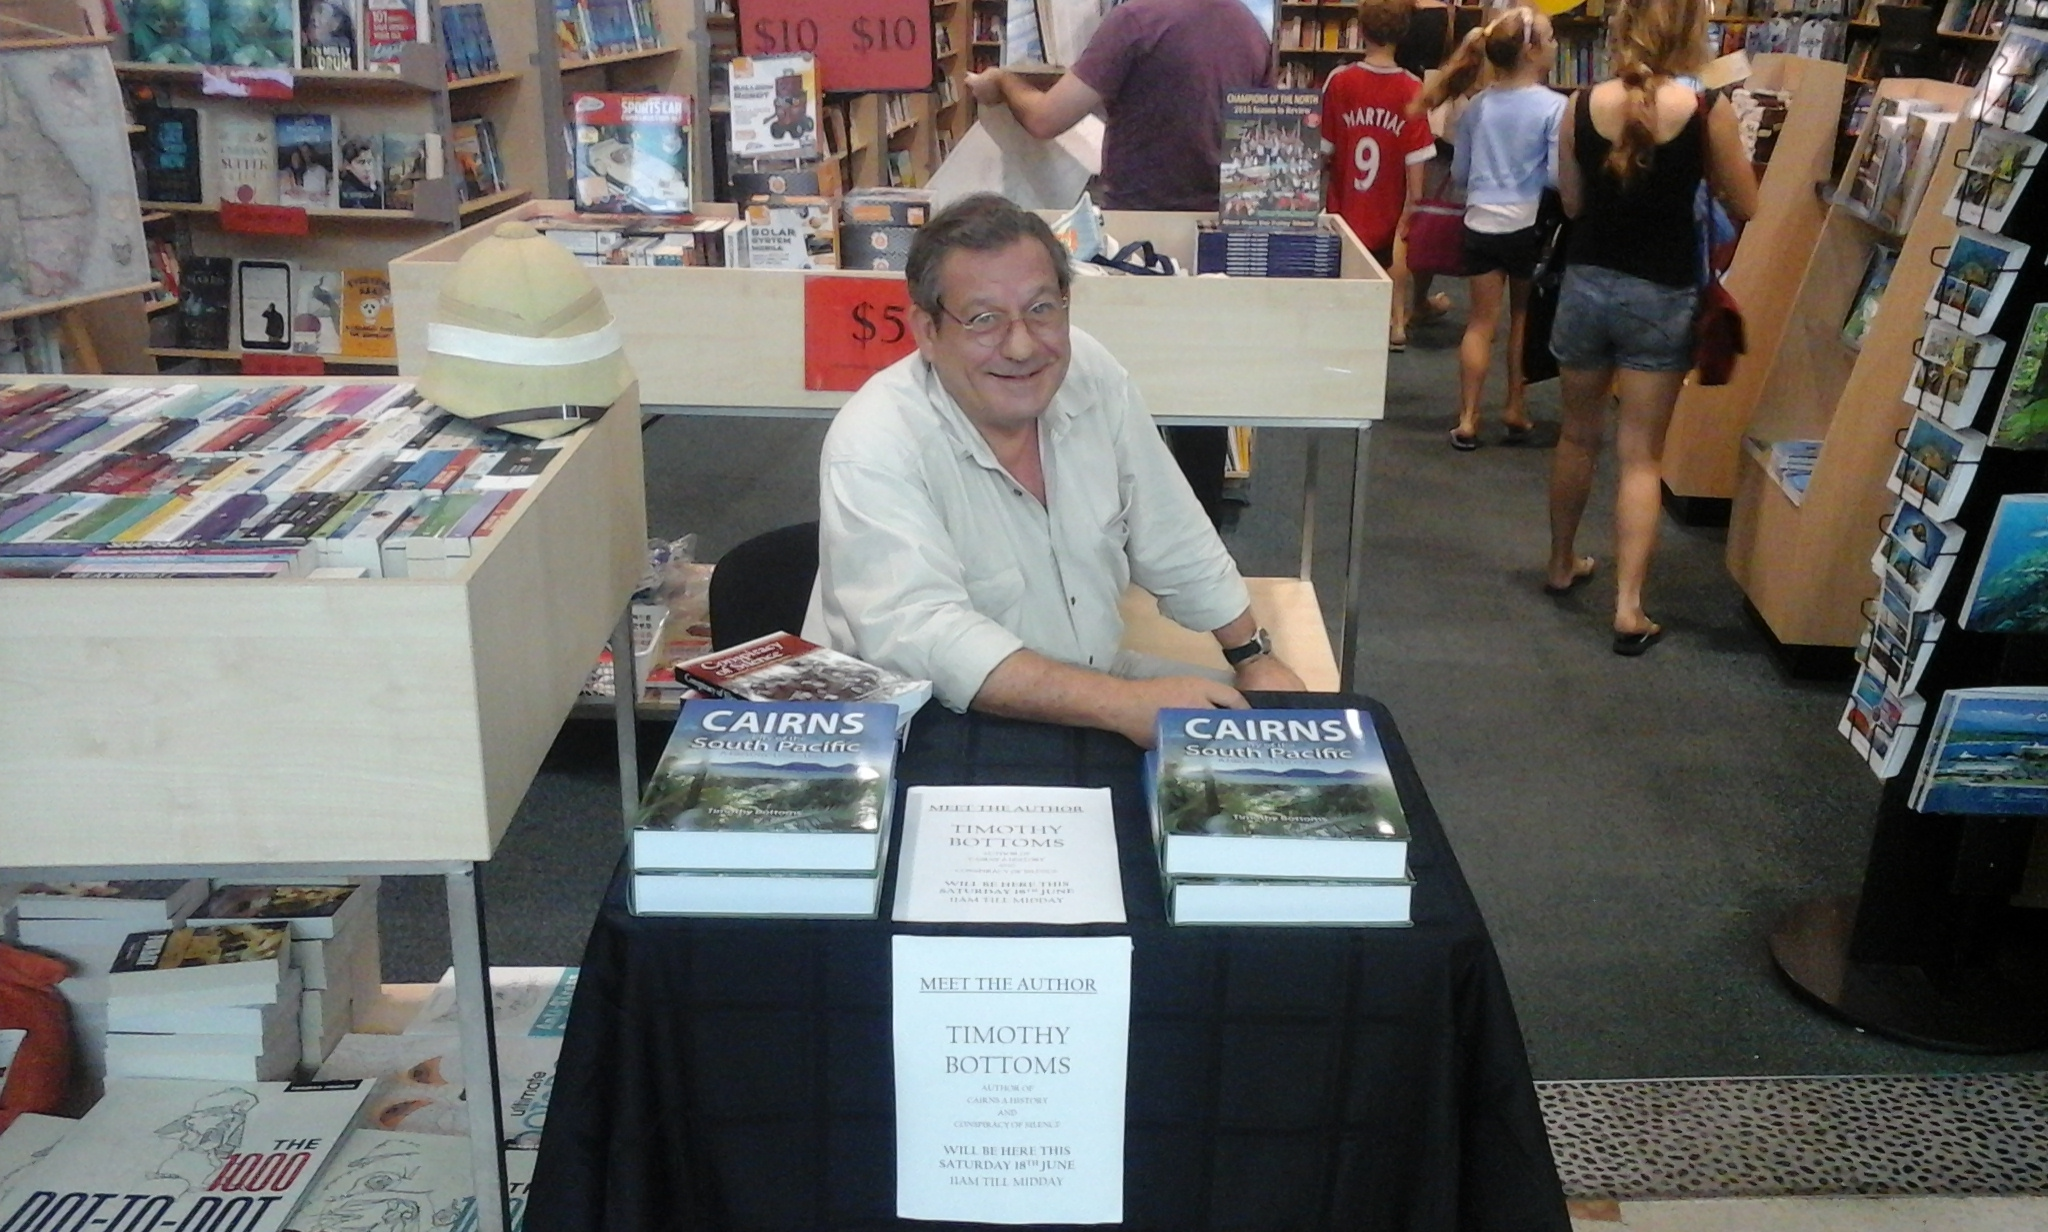 Dr-Timothy-Bottoms-Cairns Books-Book Signing-Cairns Central